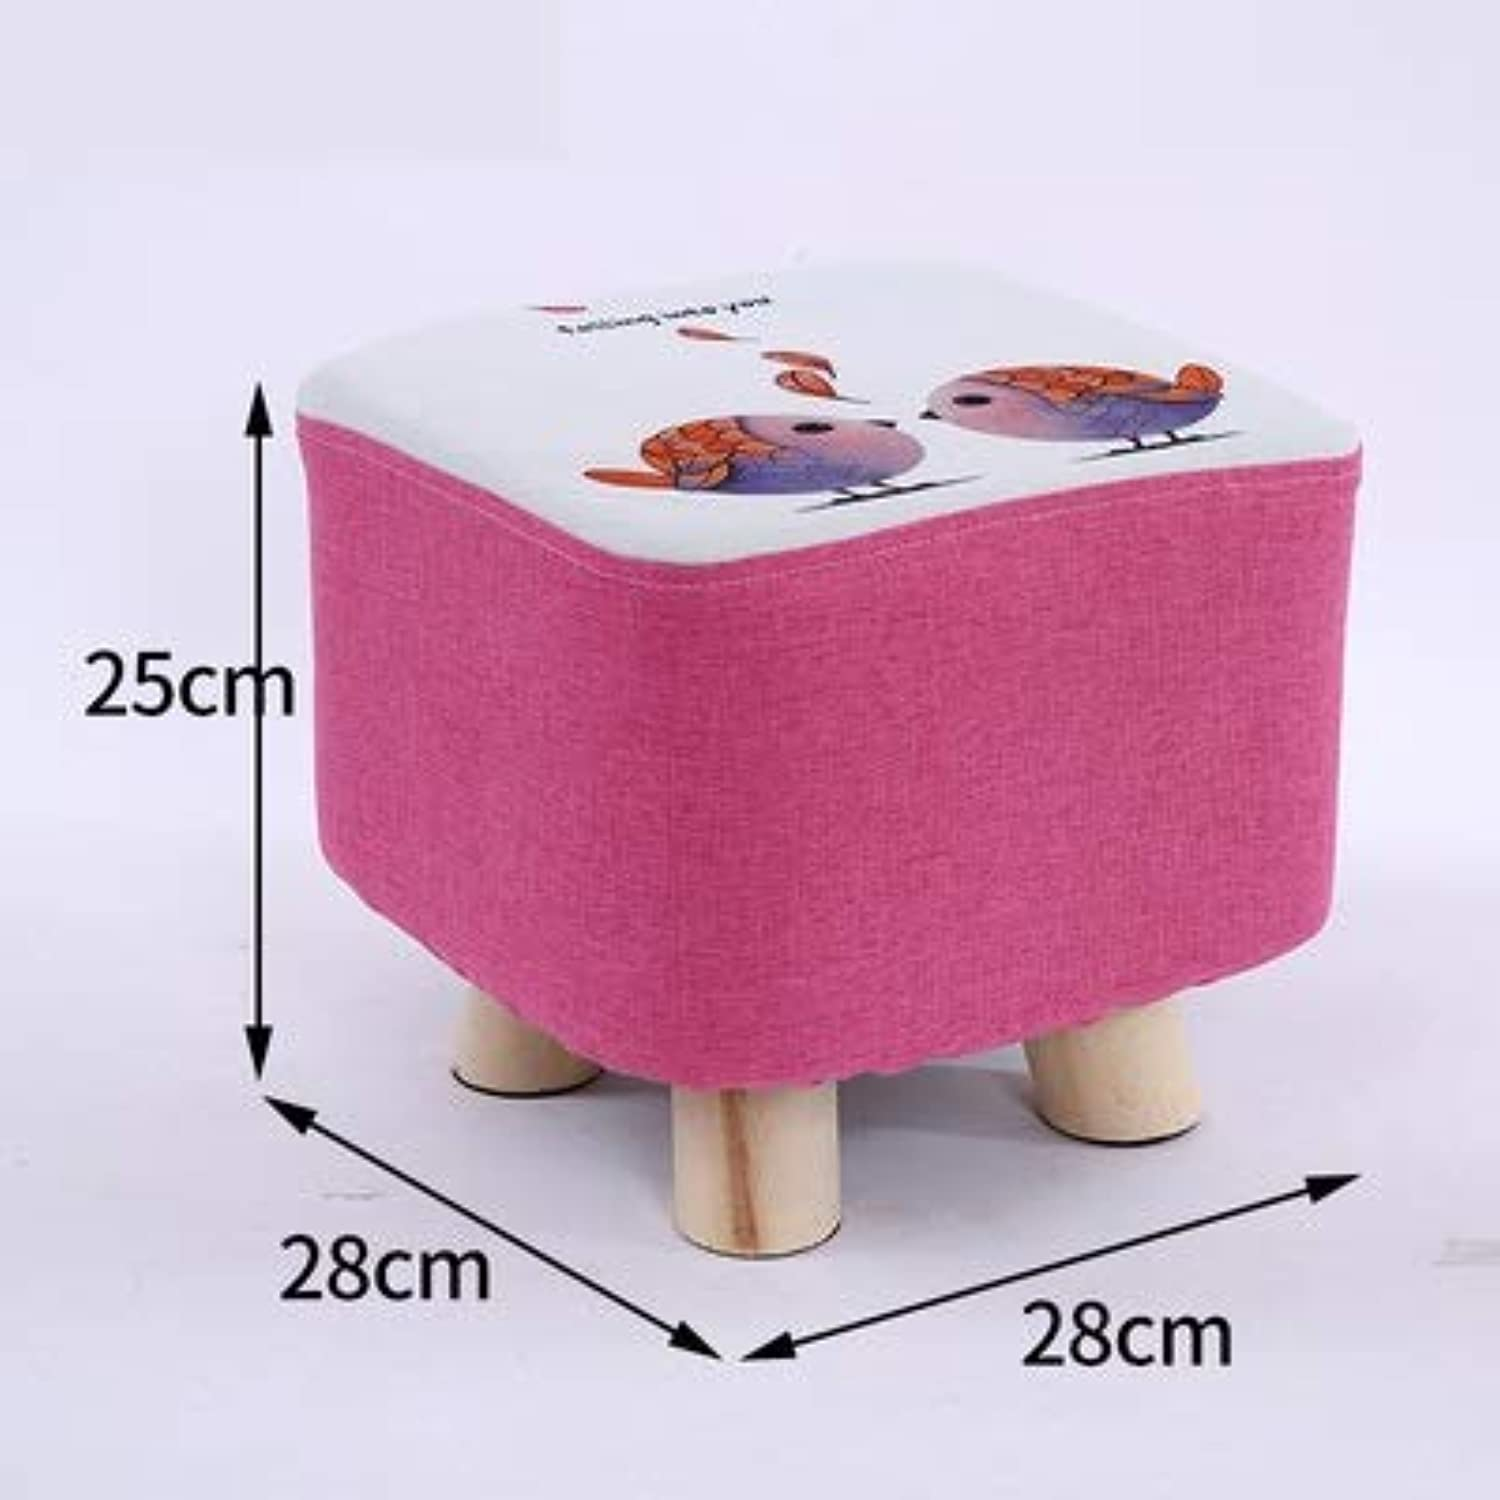 RHHWJJXB Garden Wooden Stool Round shoes Change shoes Stool Home Door Bearing Dengzi American Style Small Stool (color   A)